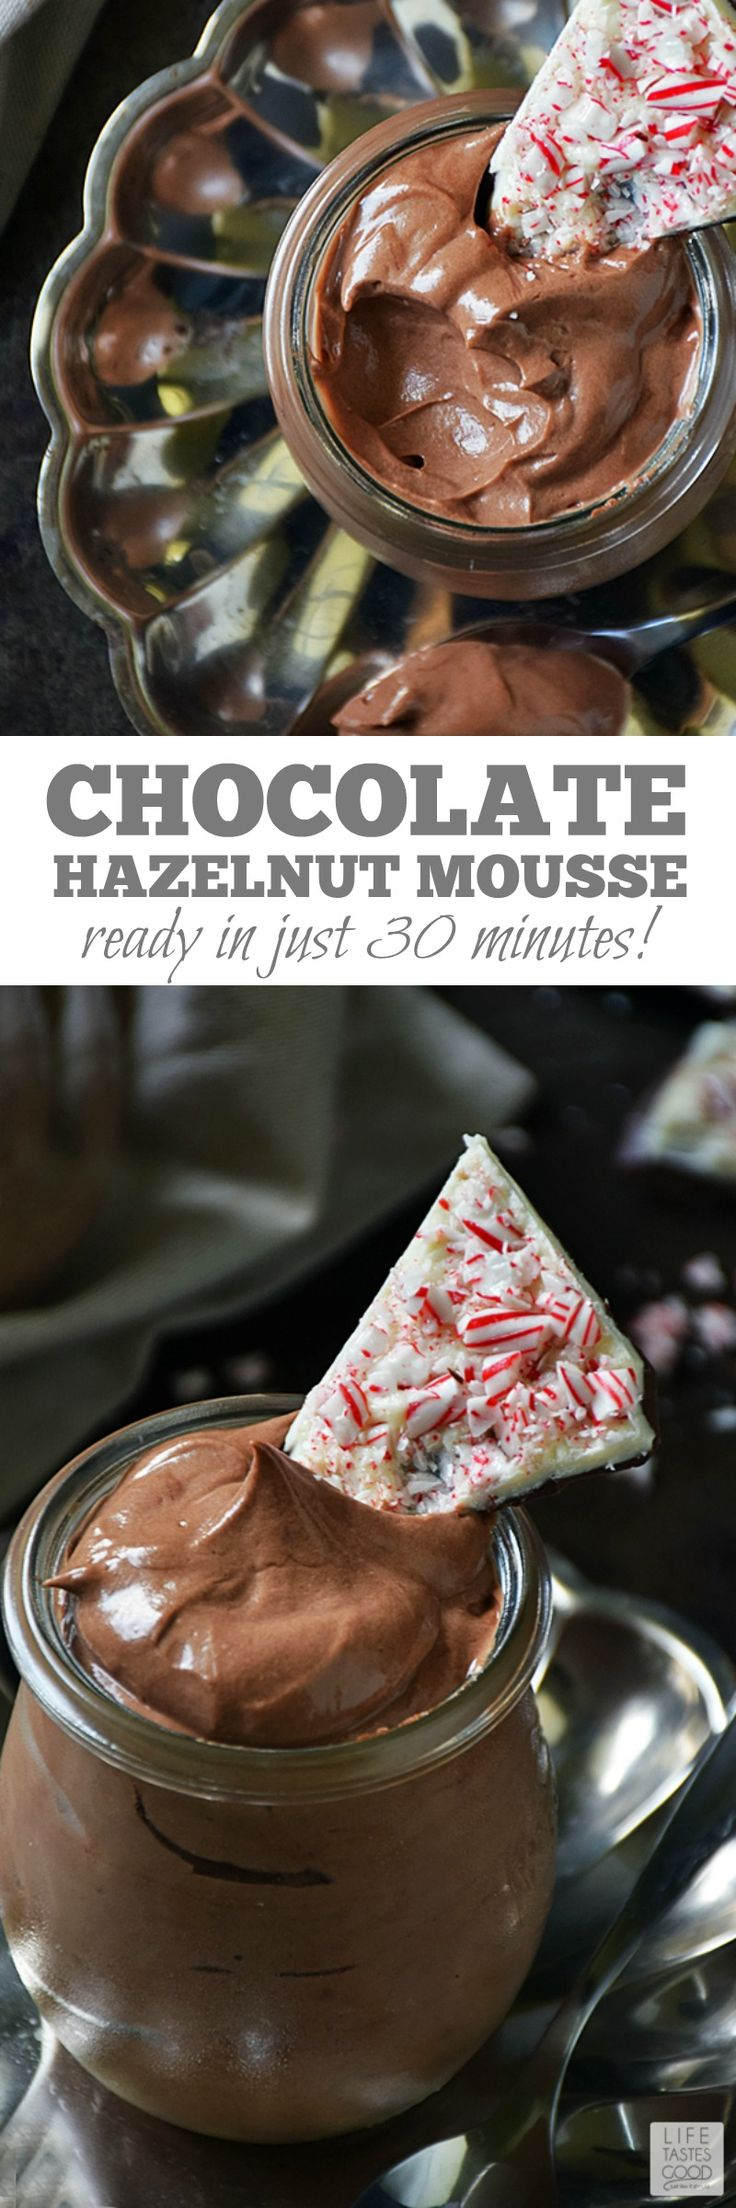 Chocolate Hazelnut Mousse | by Life Tastes Good - A rich, creamy chocolate hazelnut mousse paired with the fresh fruity flavors in a glass of Red Moscato wine is an elegant dessert I am proud to serve anytime of year, but especially during the holidays. It never fails to impress, and no one will ever know how incredibly easy it is to make! #LTGrecipes